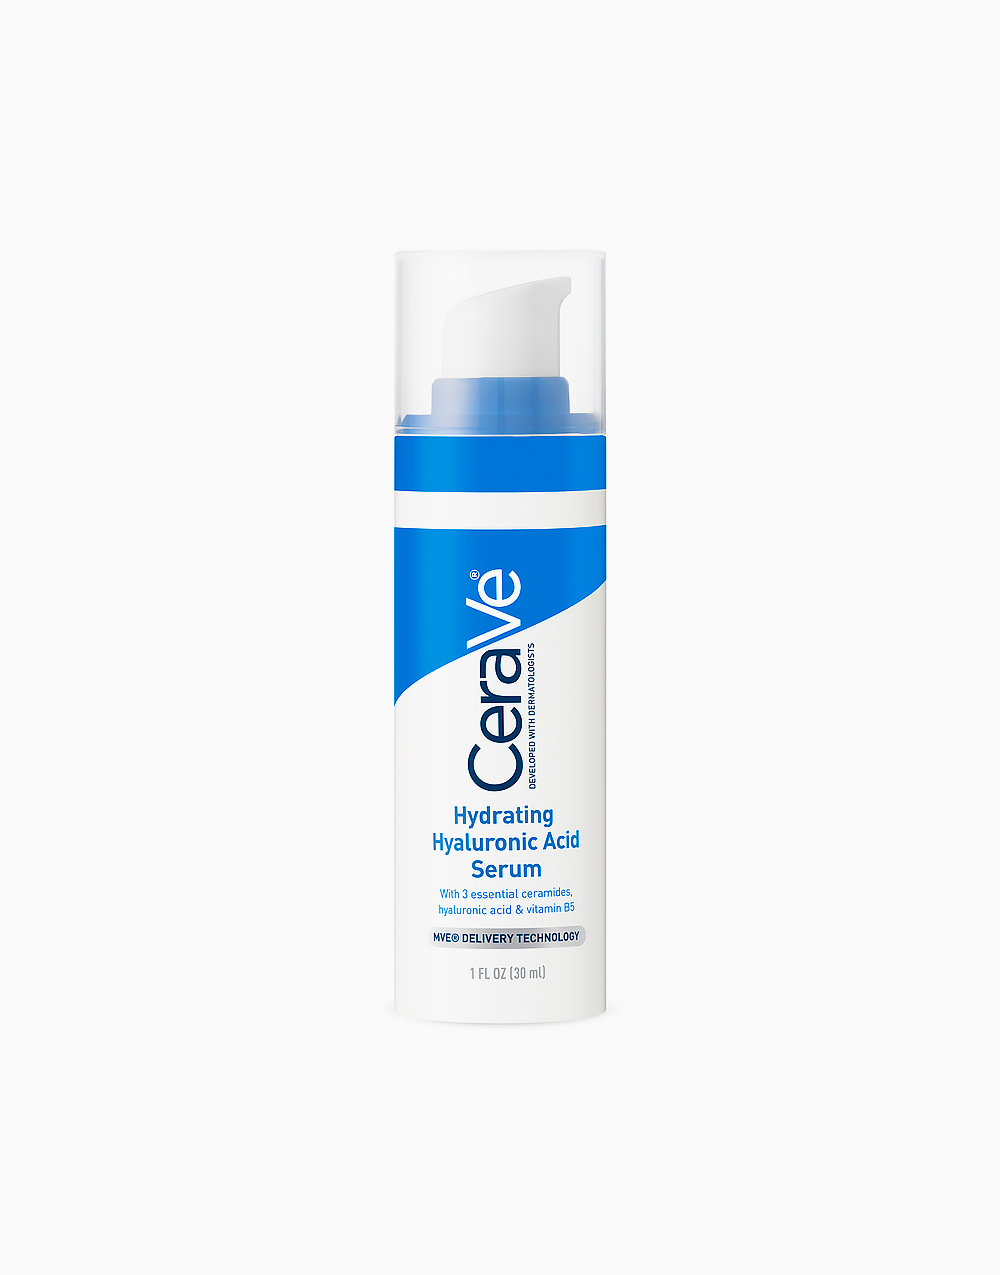 Hydrating Hyaluronic Acid Serum (30ml) by CeraVe